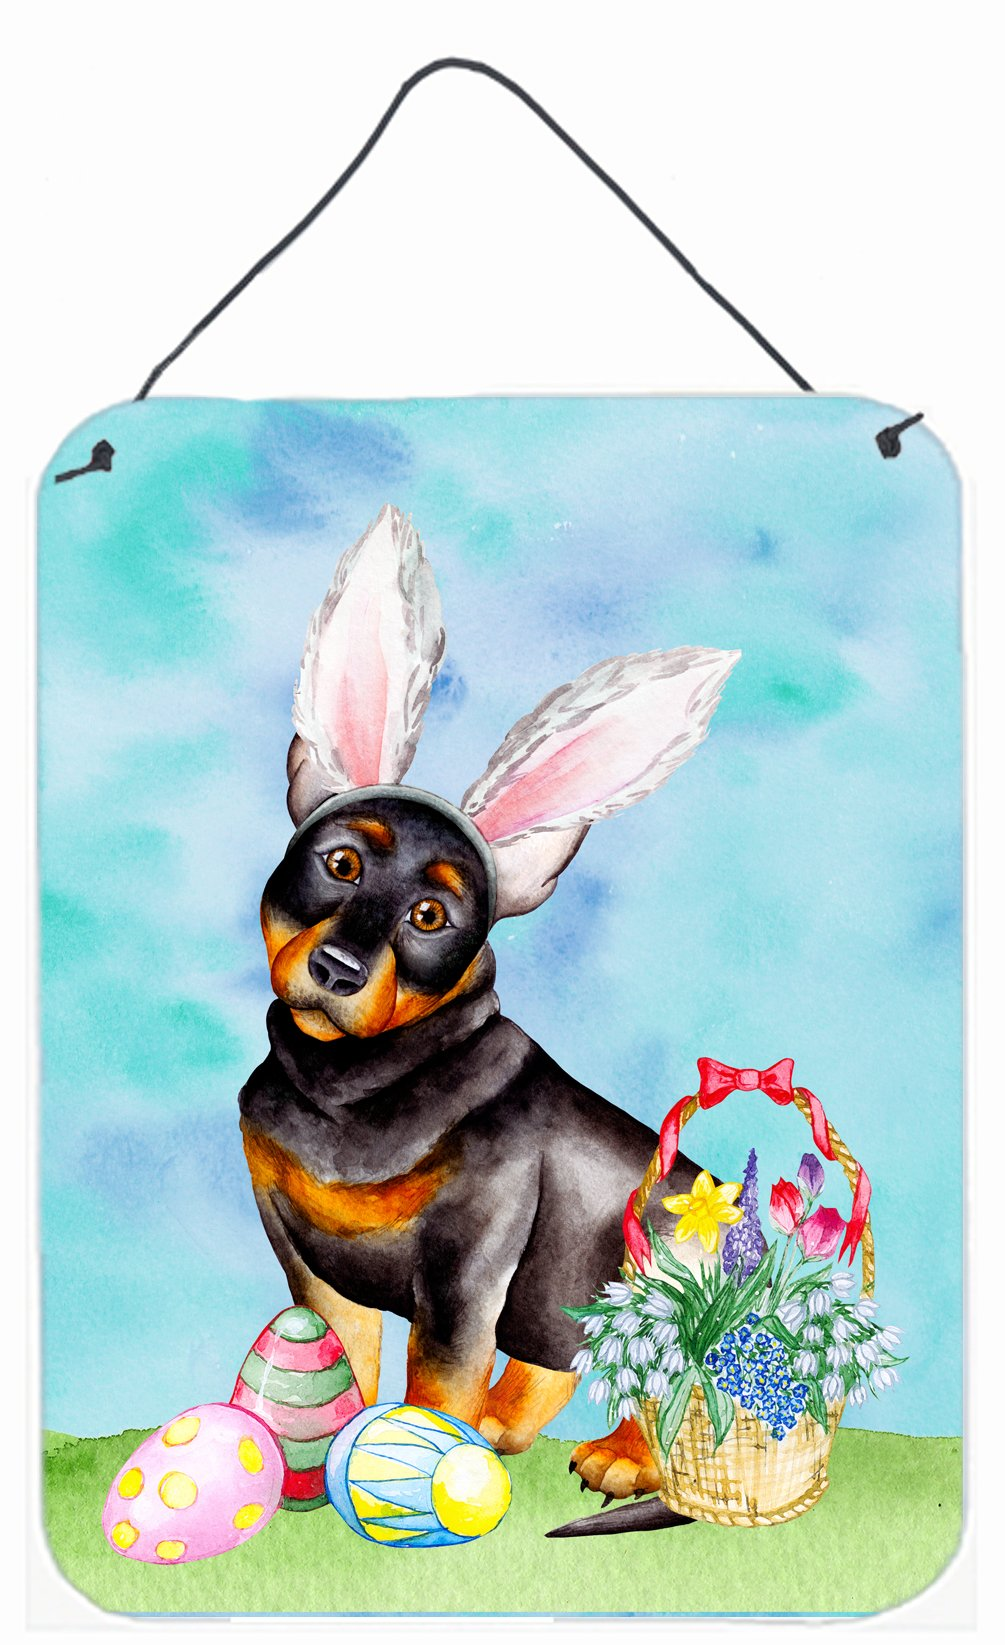 Lancashire Heeler Easter Bunny Wall or Door Hanging Prints CK1377DS1216 by Caroline's Treasures